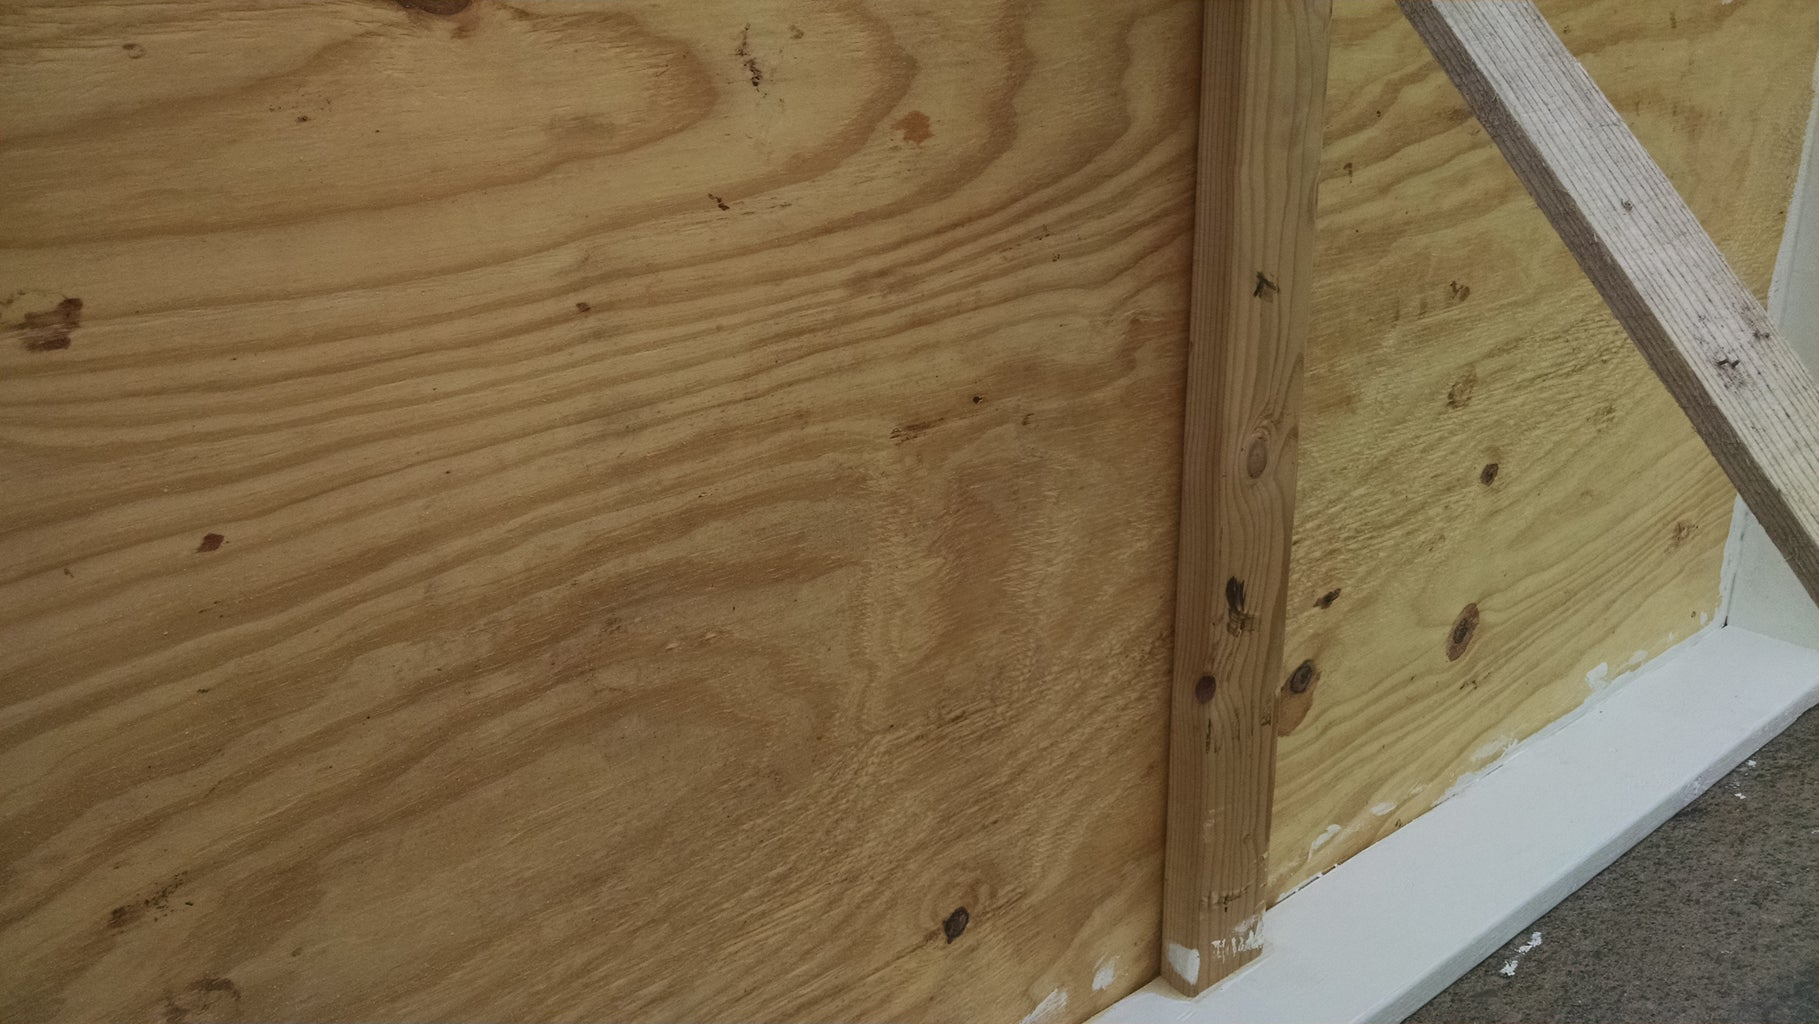 Cut and Install Plywood